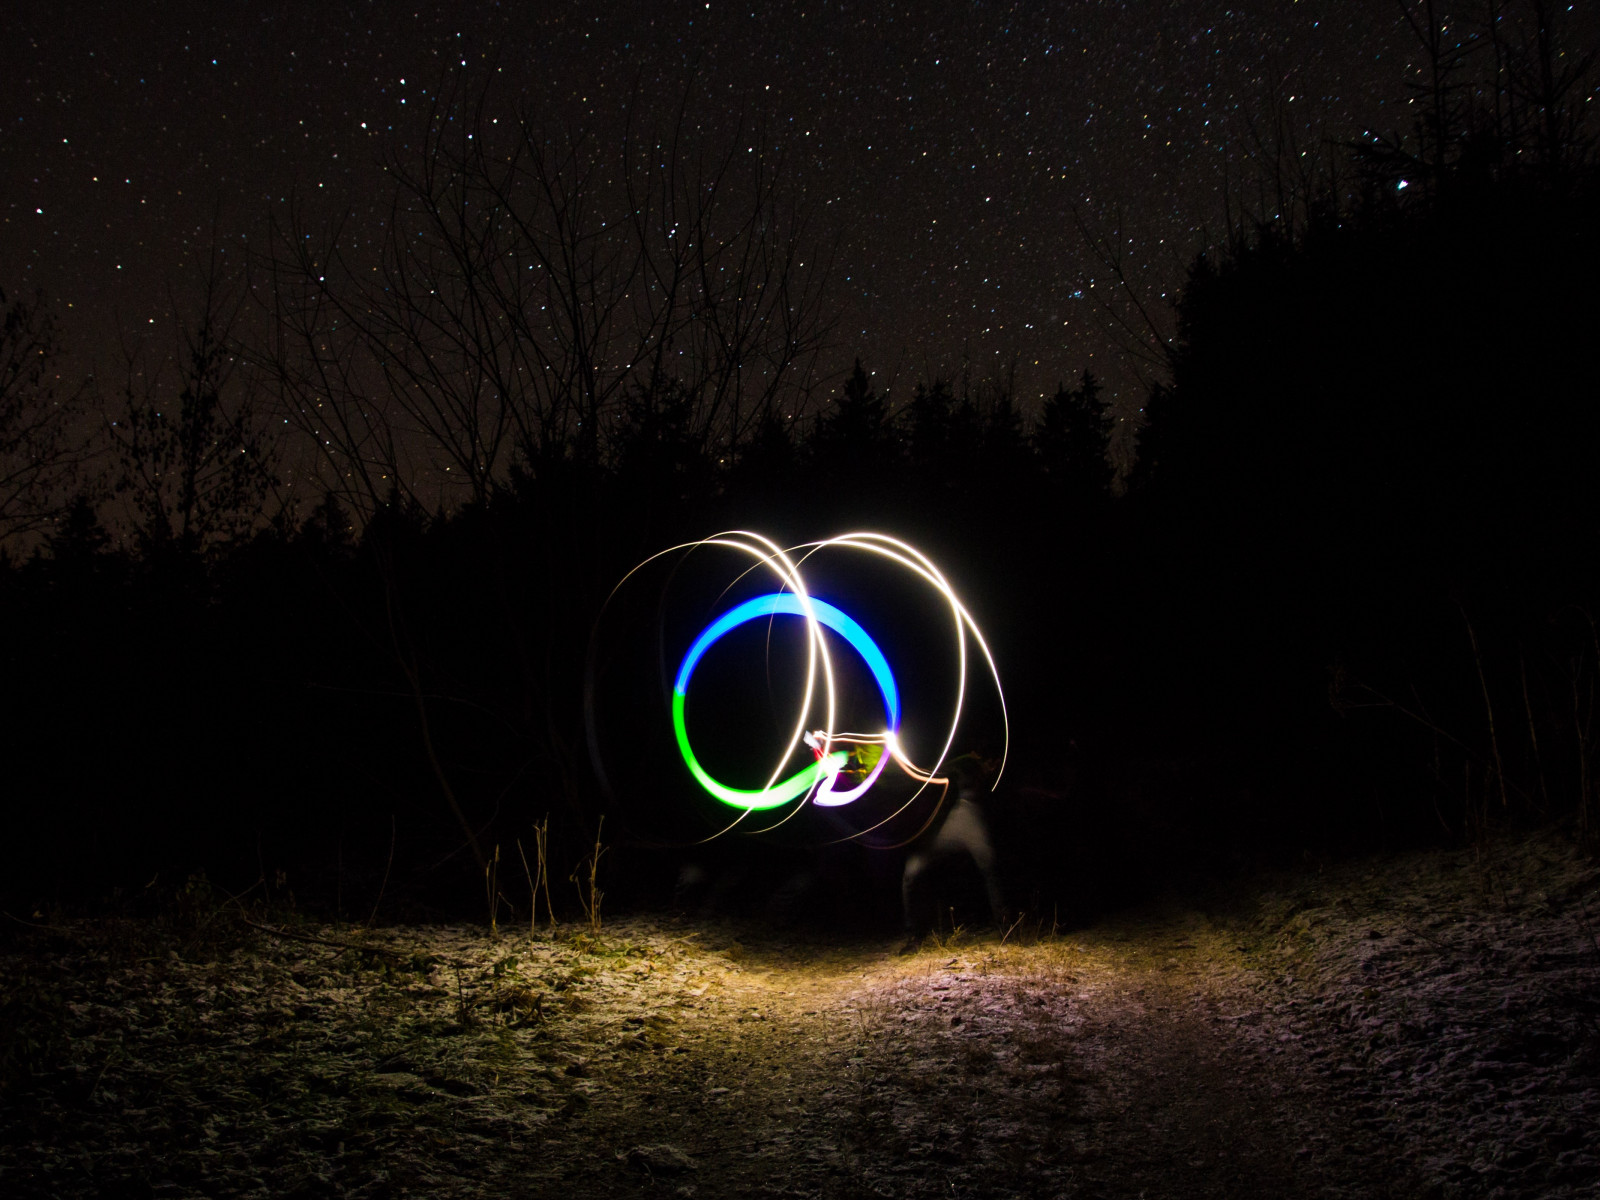 Light graffiti and the sky full of stars wallpaper 1600x1200